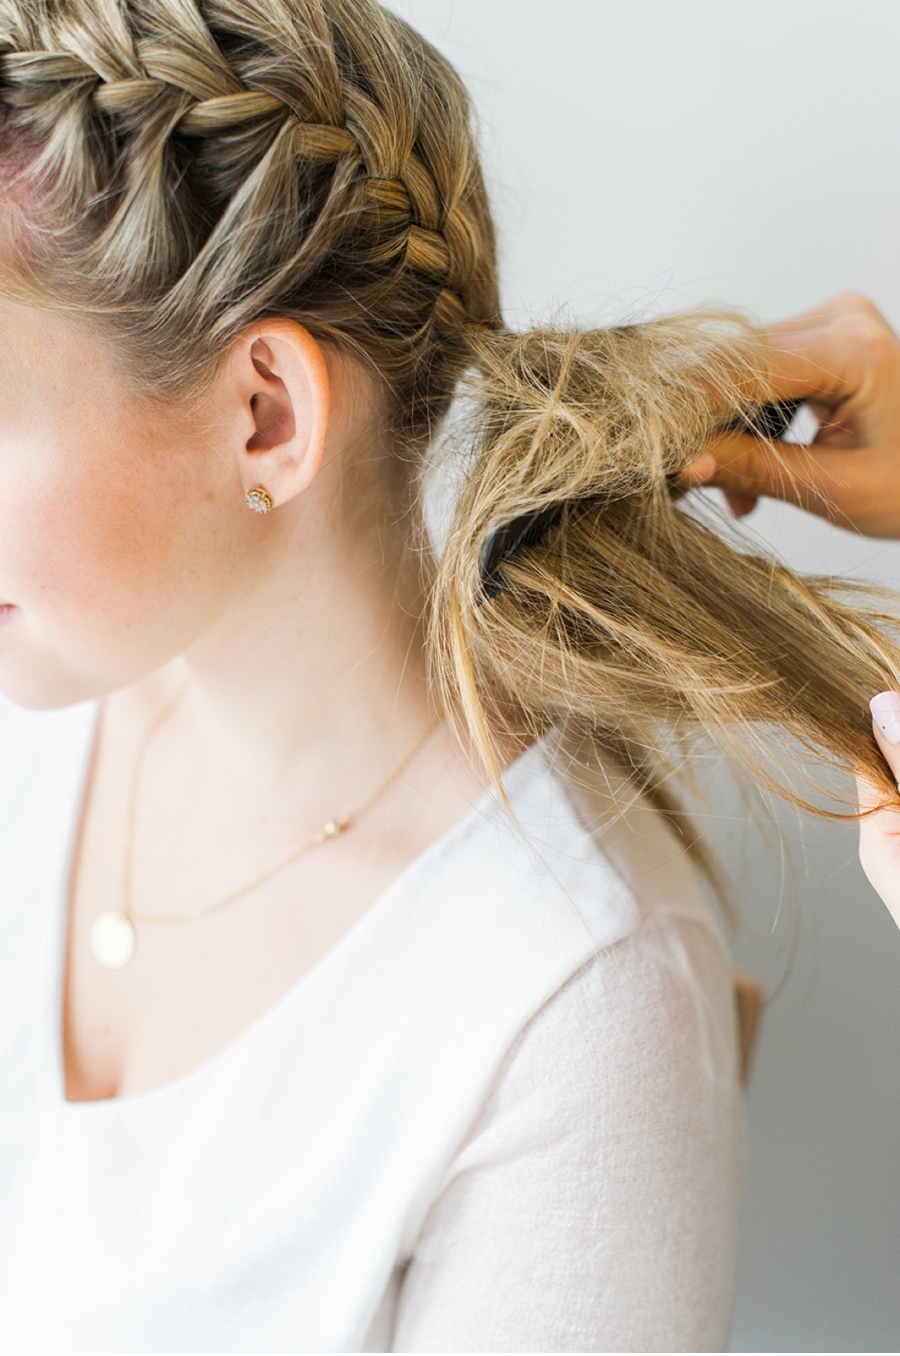  STEP 4 Using a comb, backcomb your side ponytail to create tons of volume and texture.